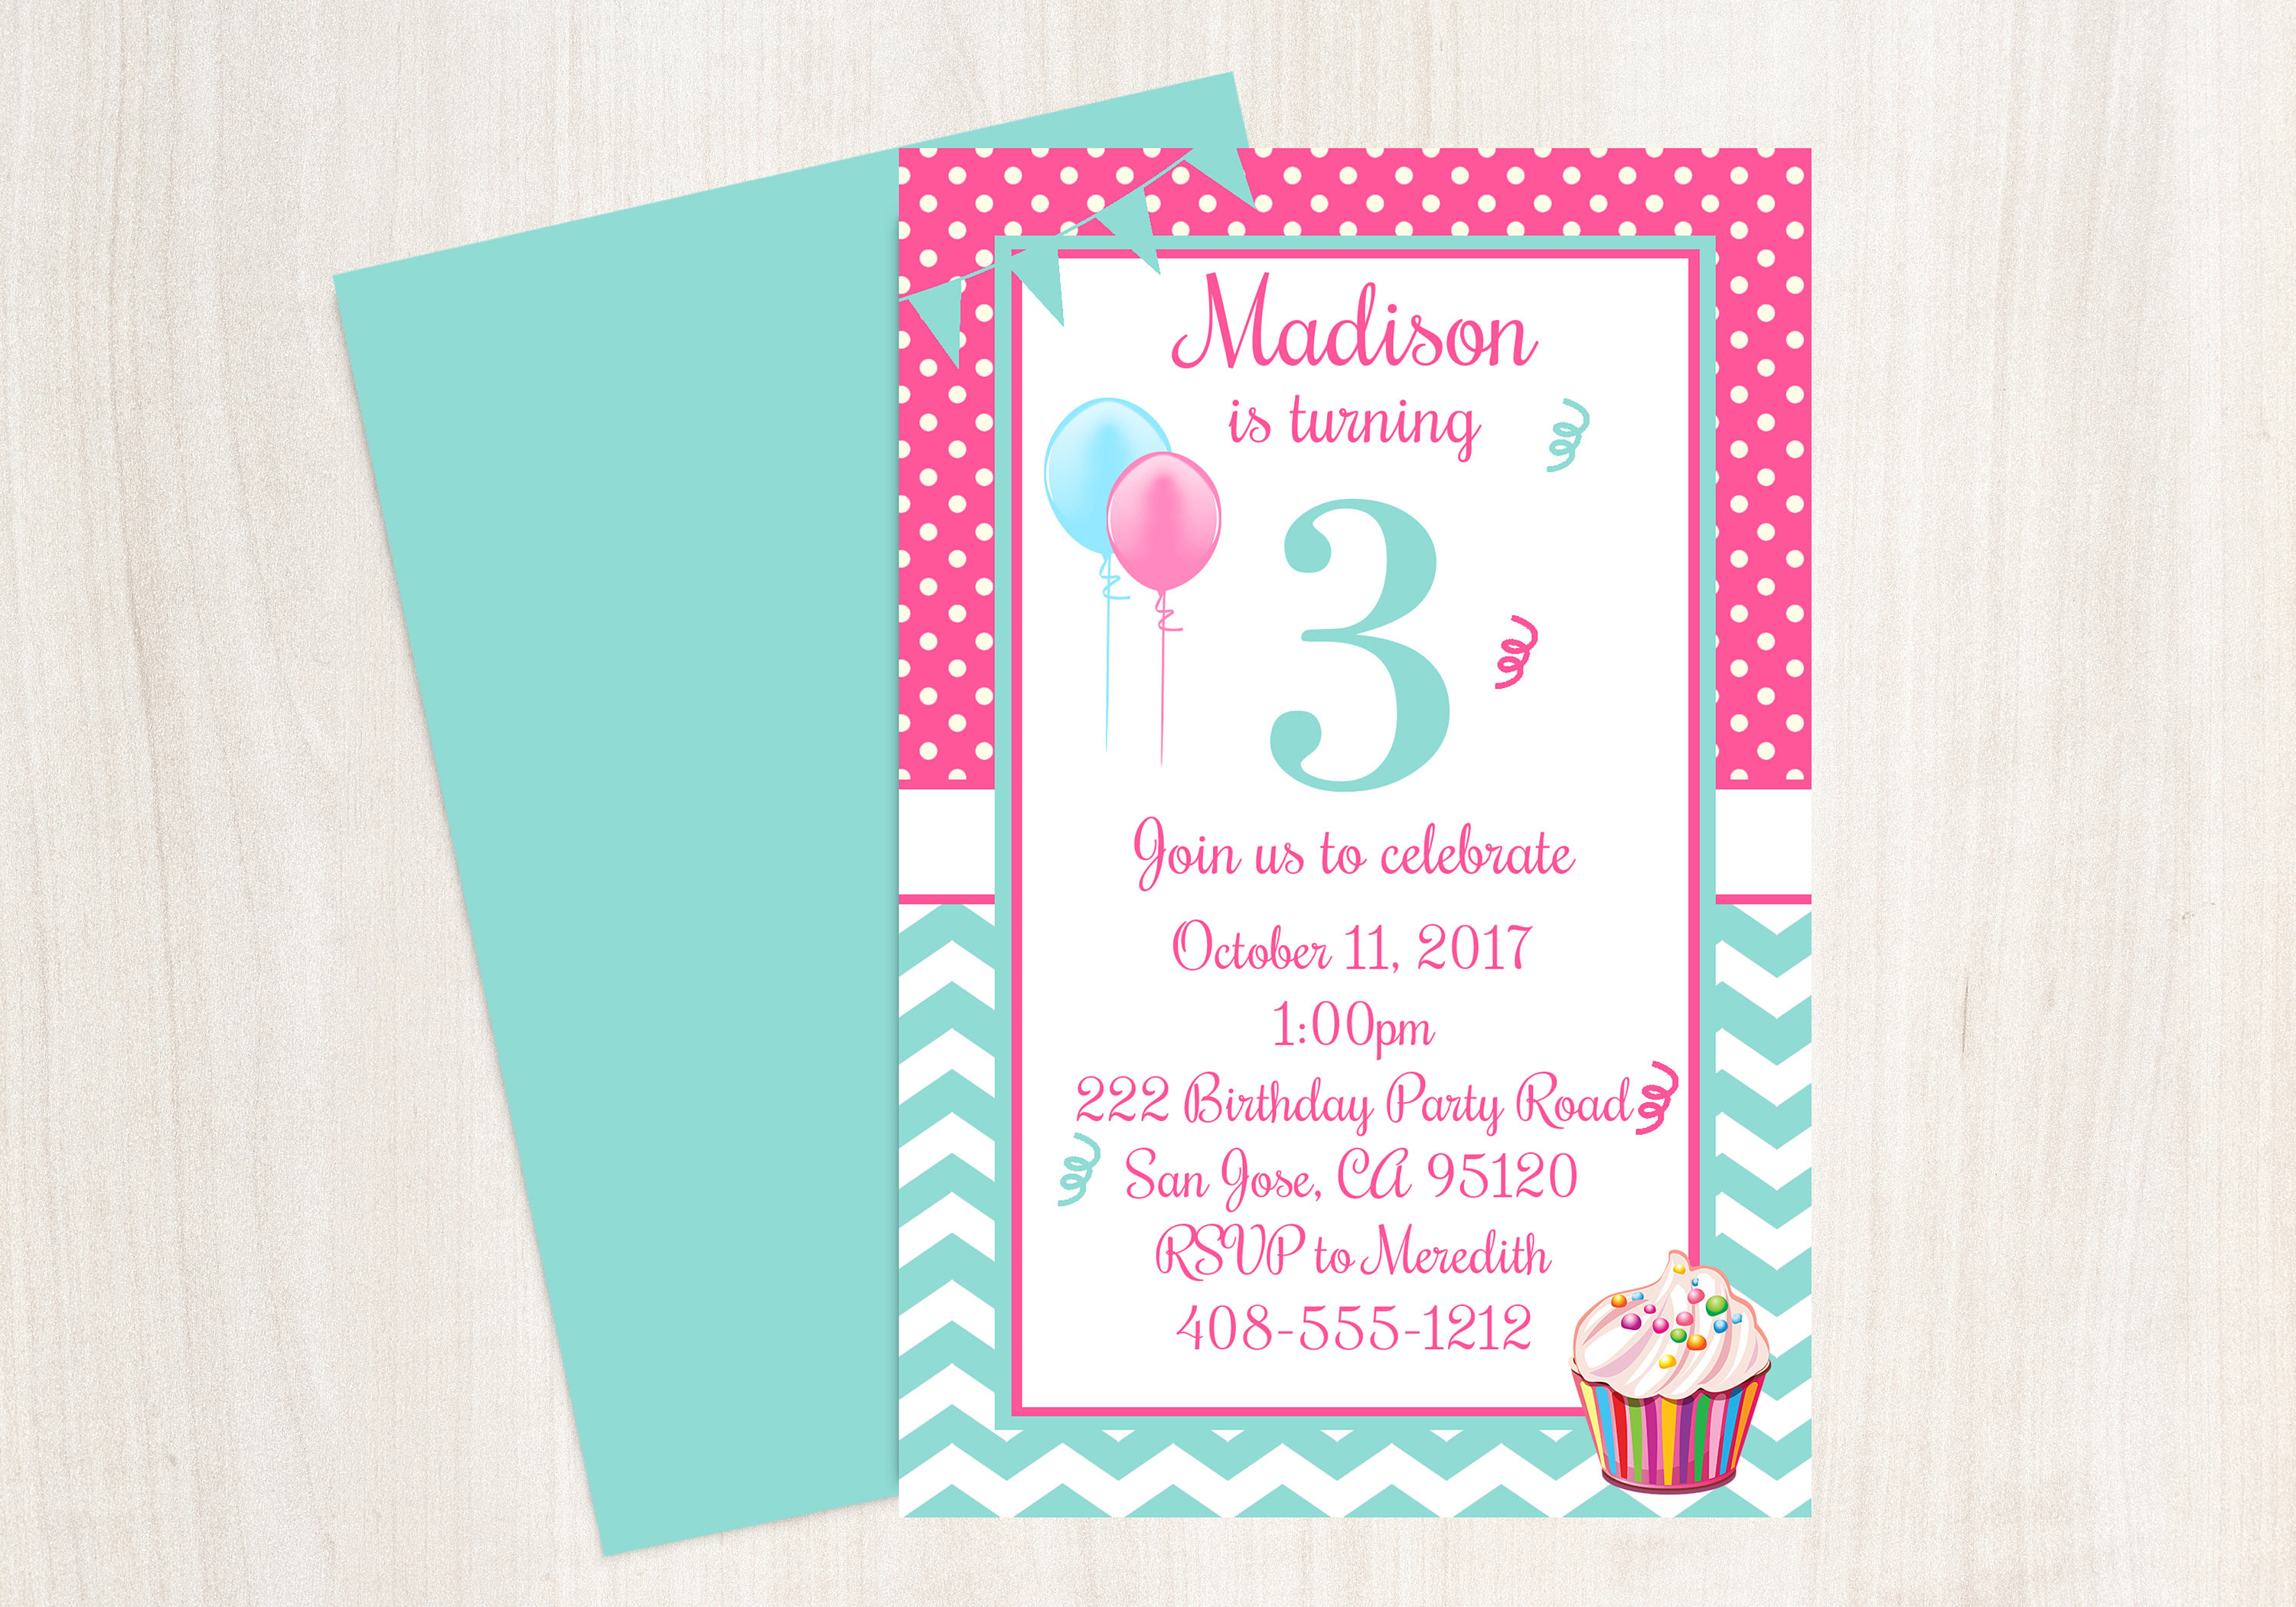 Best ideas about 3rd Birthday Invitations . Save or Pin 3rd Birthday Party Invitation 3rd Birthday Third Birthday Now.